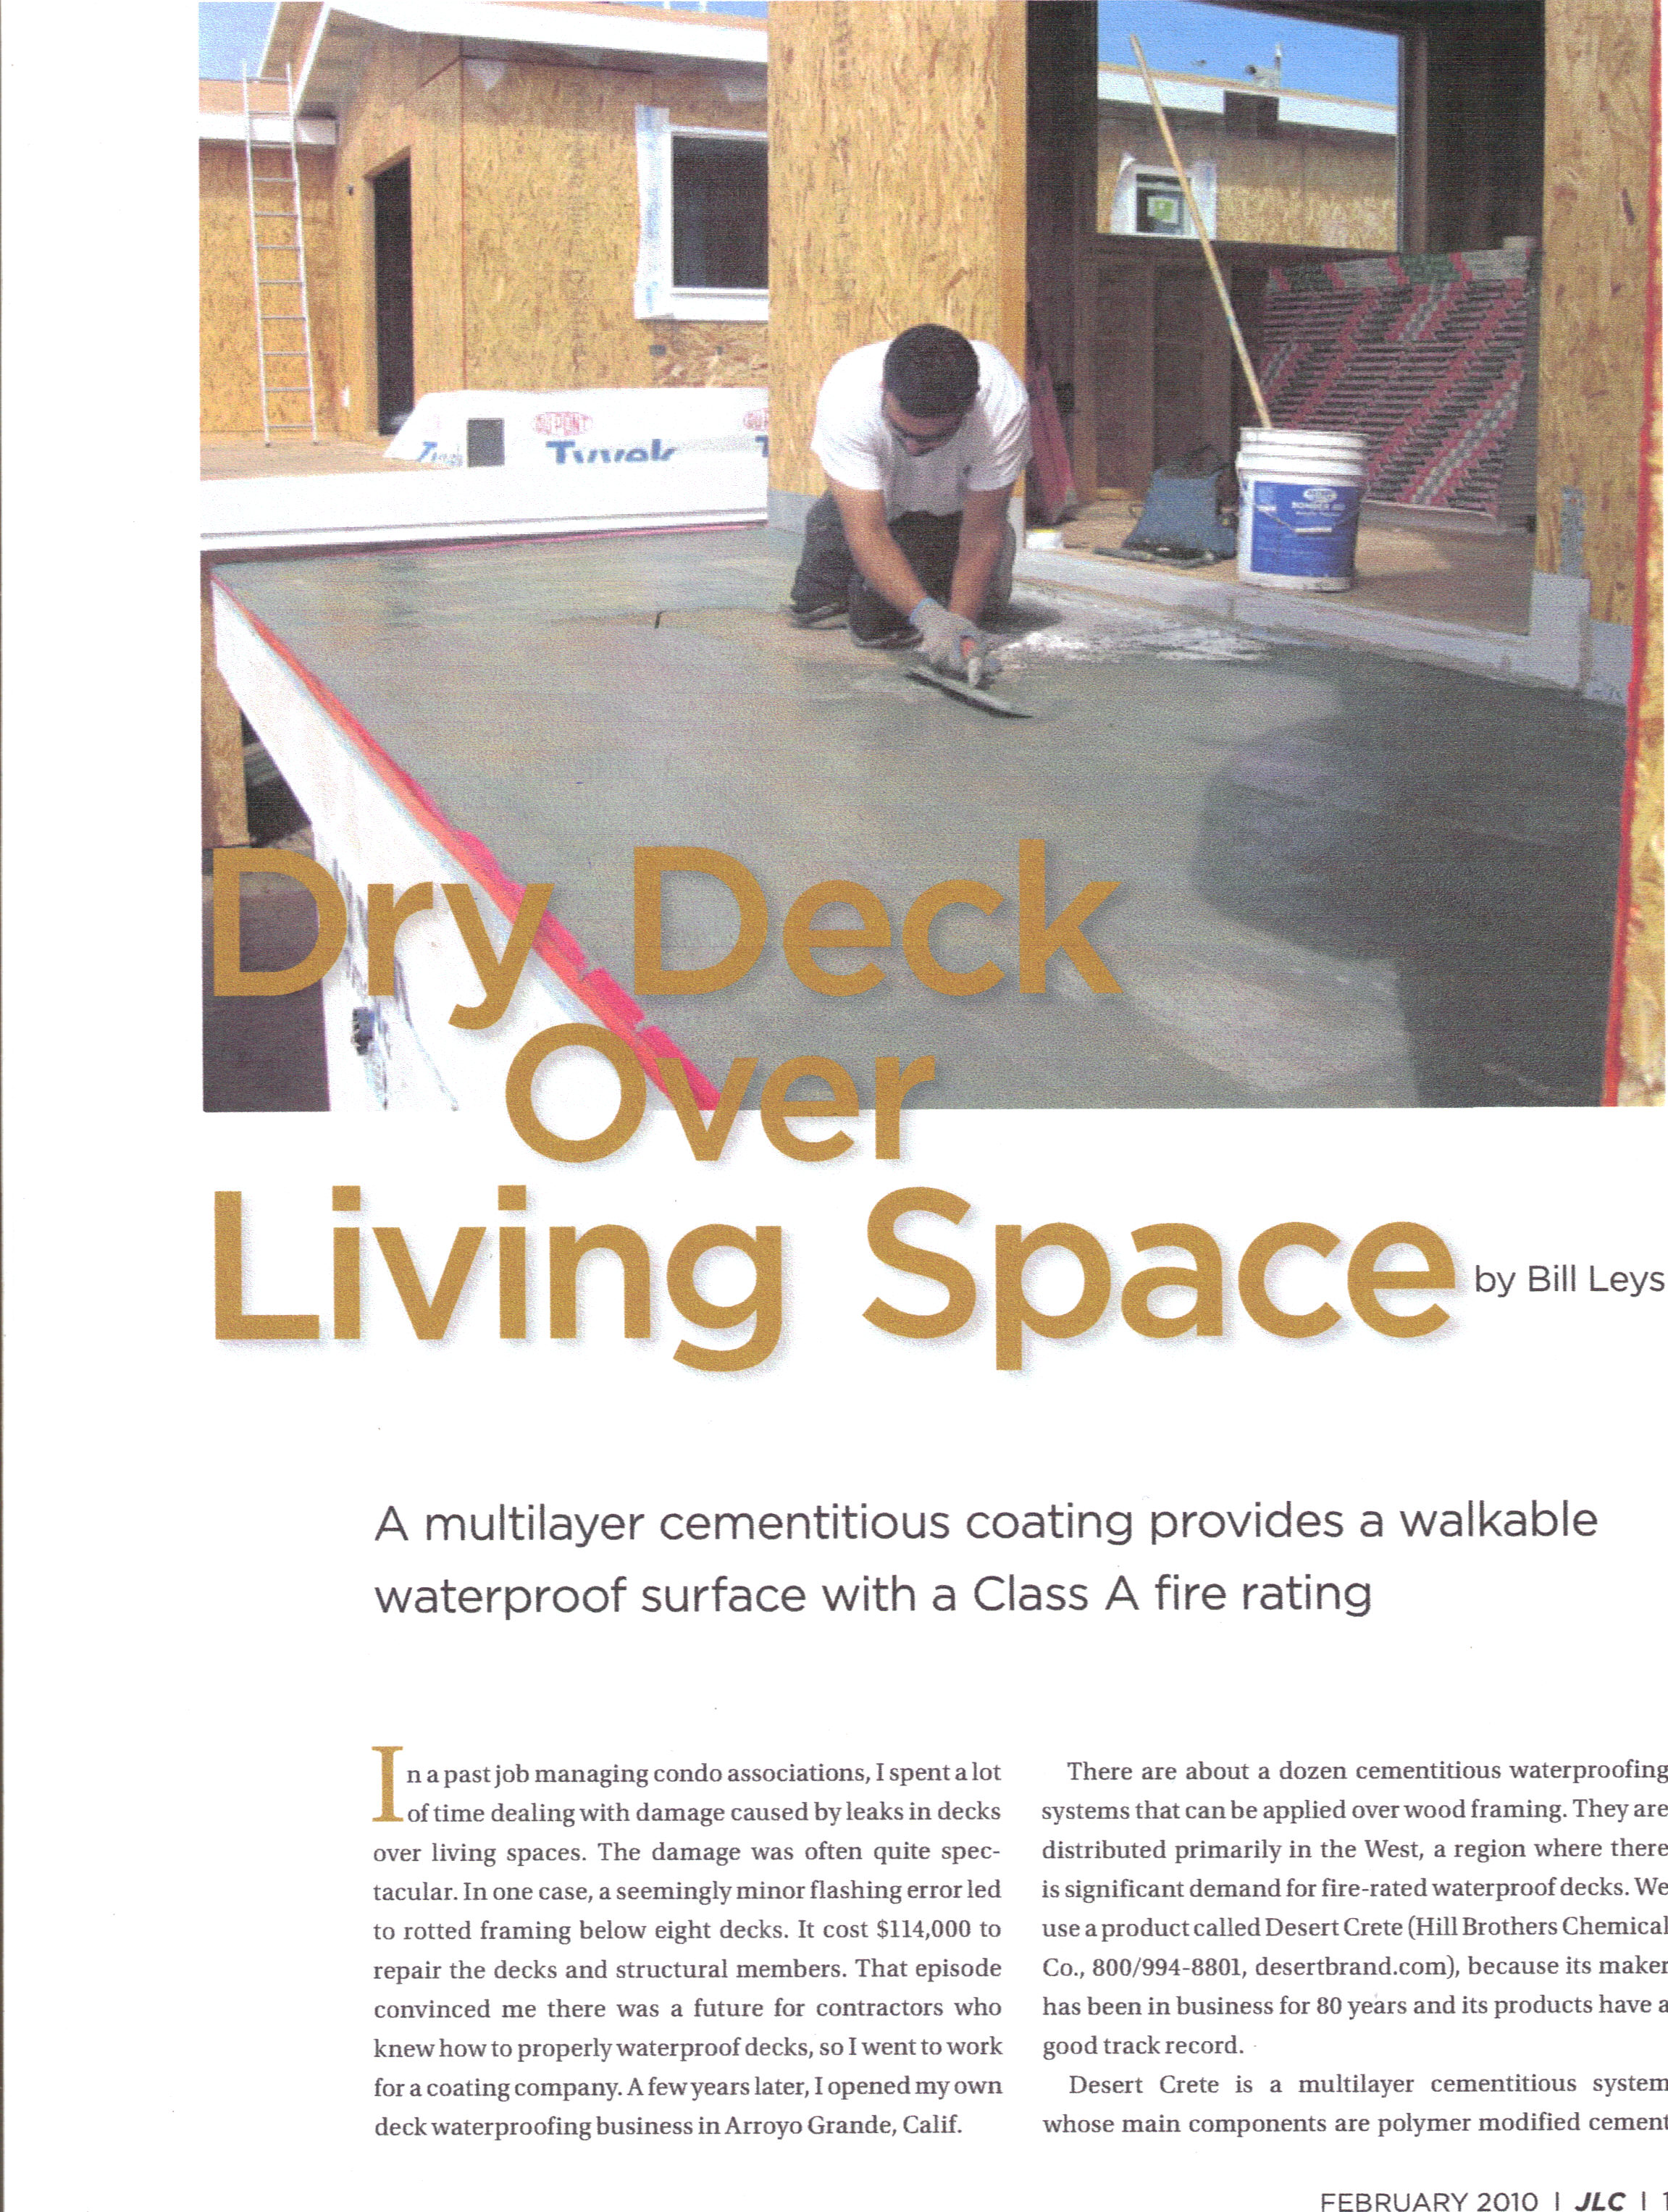 Superb Central Coast Waterproofing Was Featured In The Journal Of Light  Construction Magazine In February When An Article Entitled U201cDry Deck Over  Living Spaceu201d Was ...